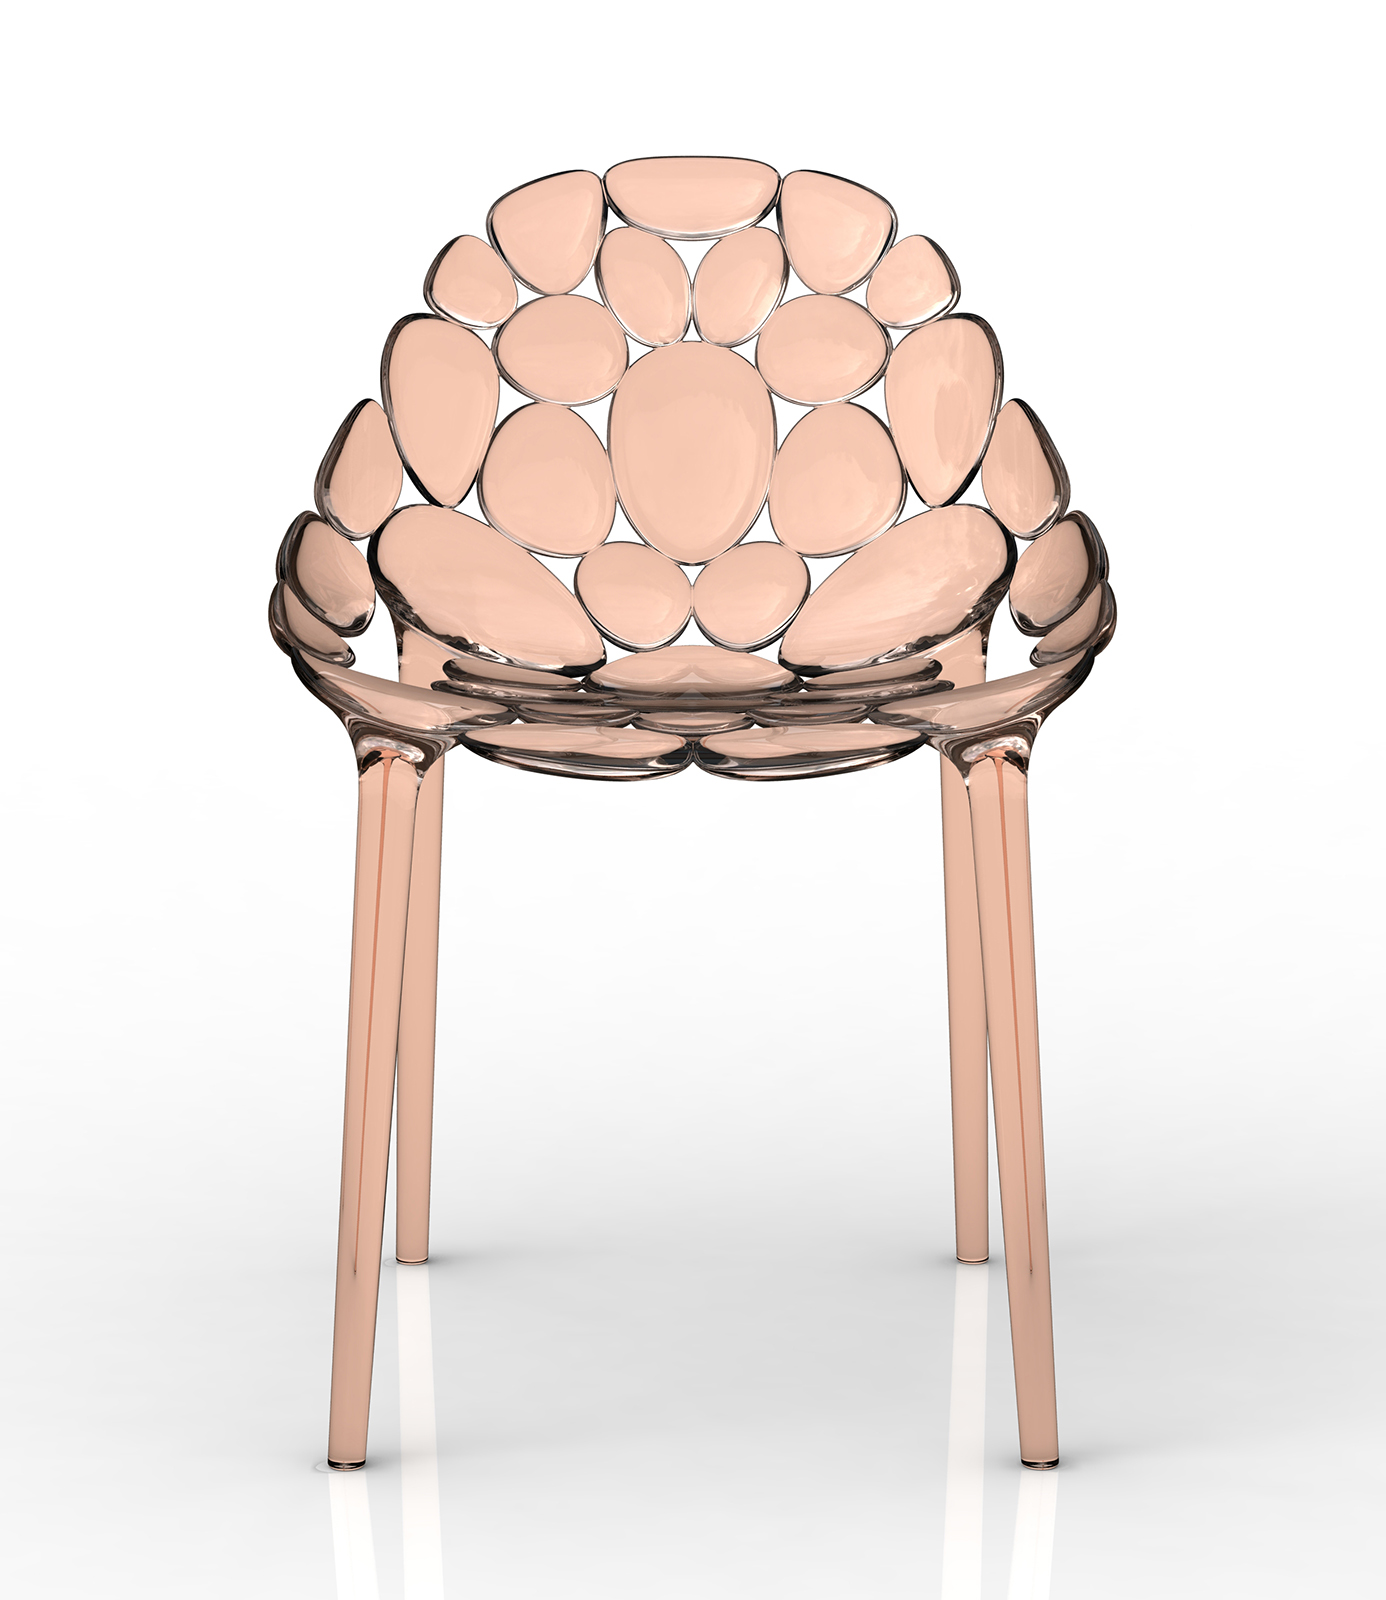 Claud-io chair by eugeni Quitllet with Kartell 12